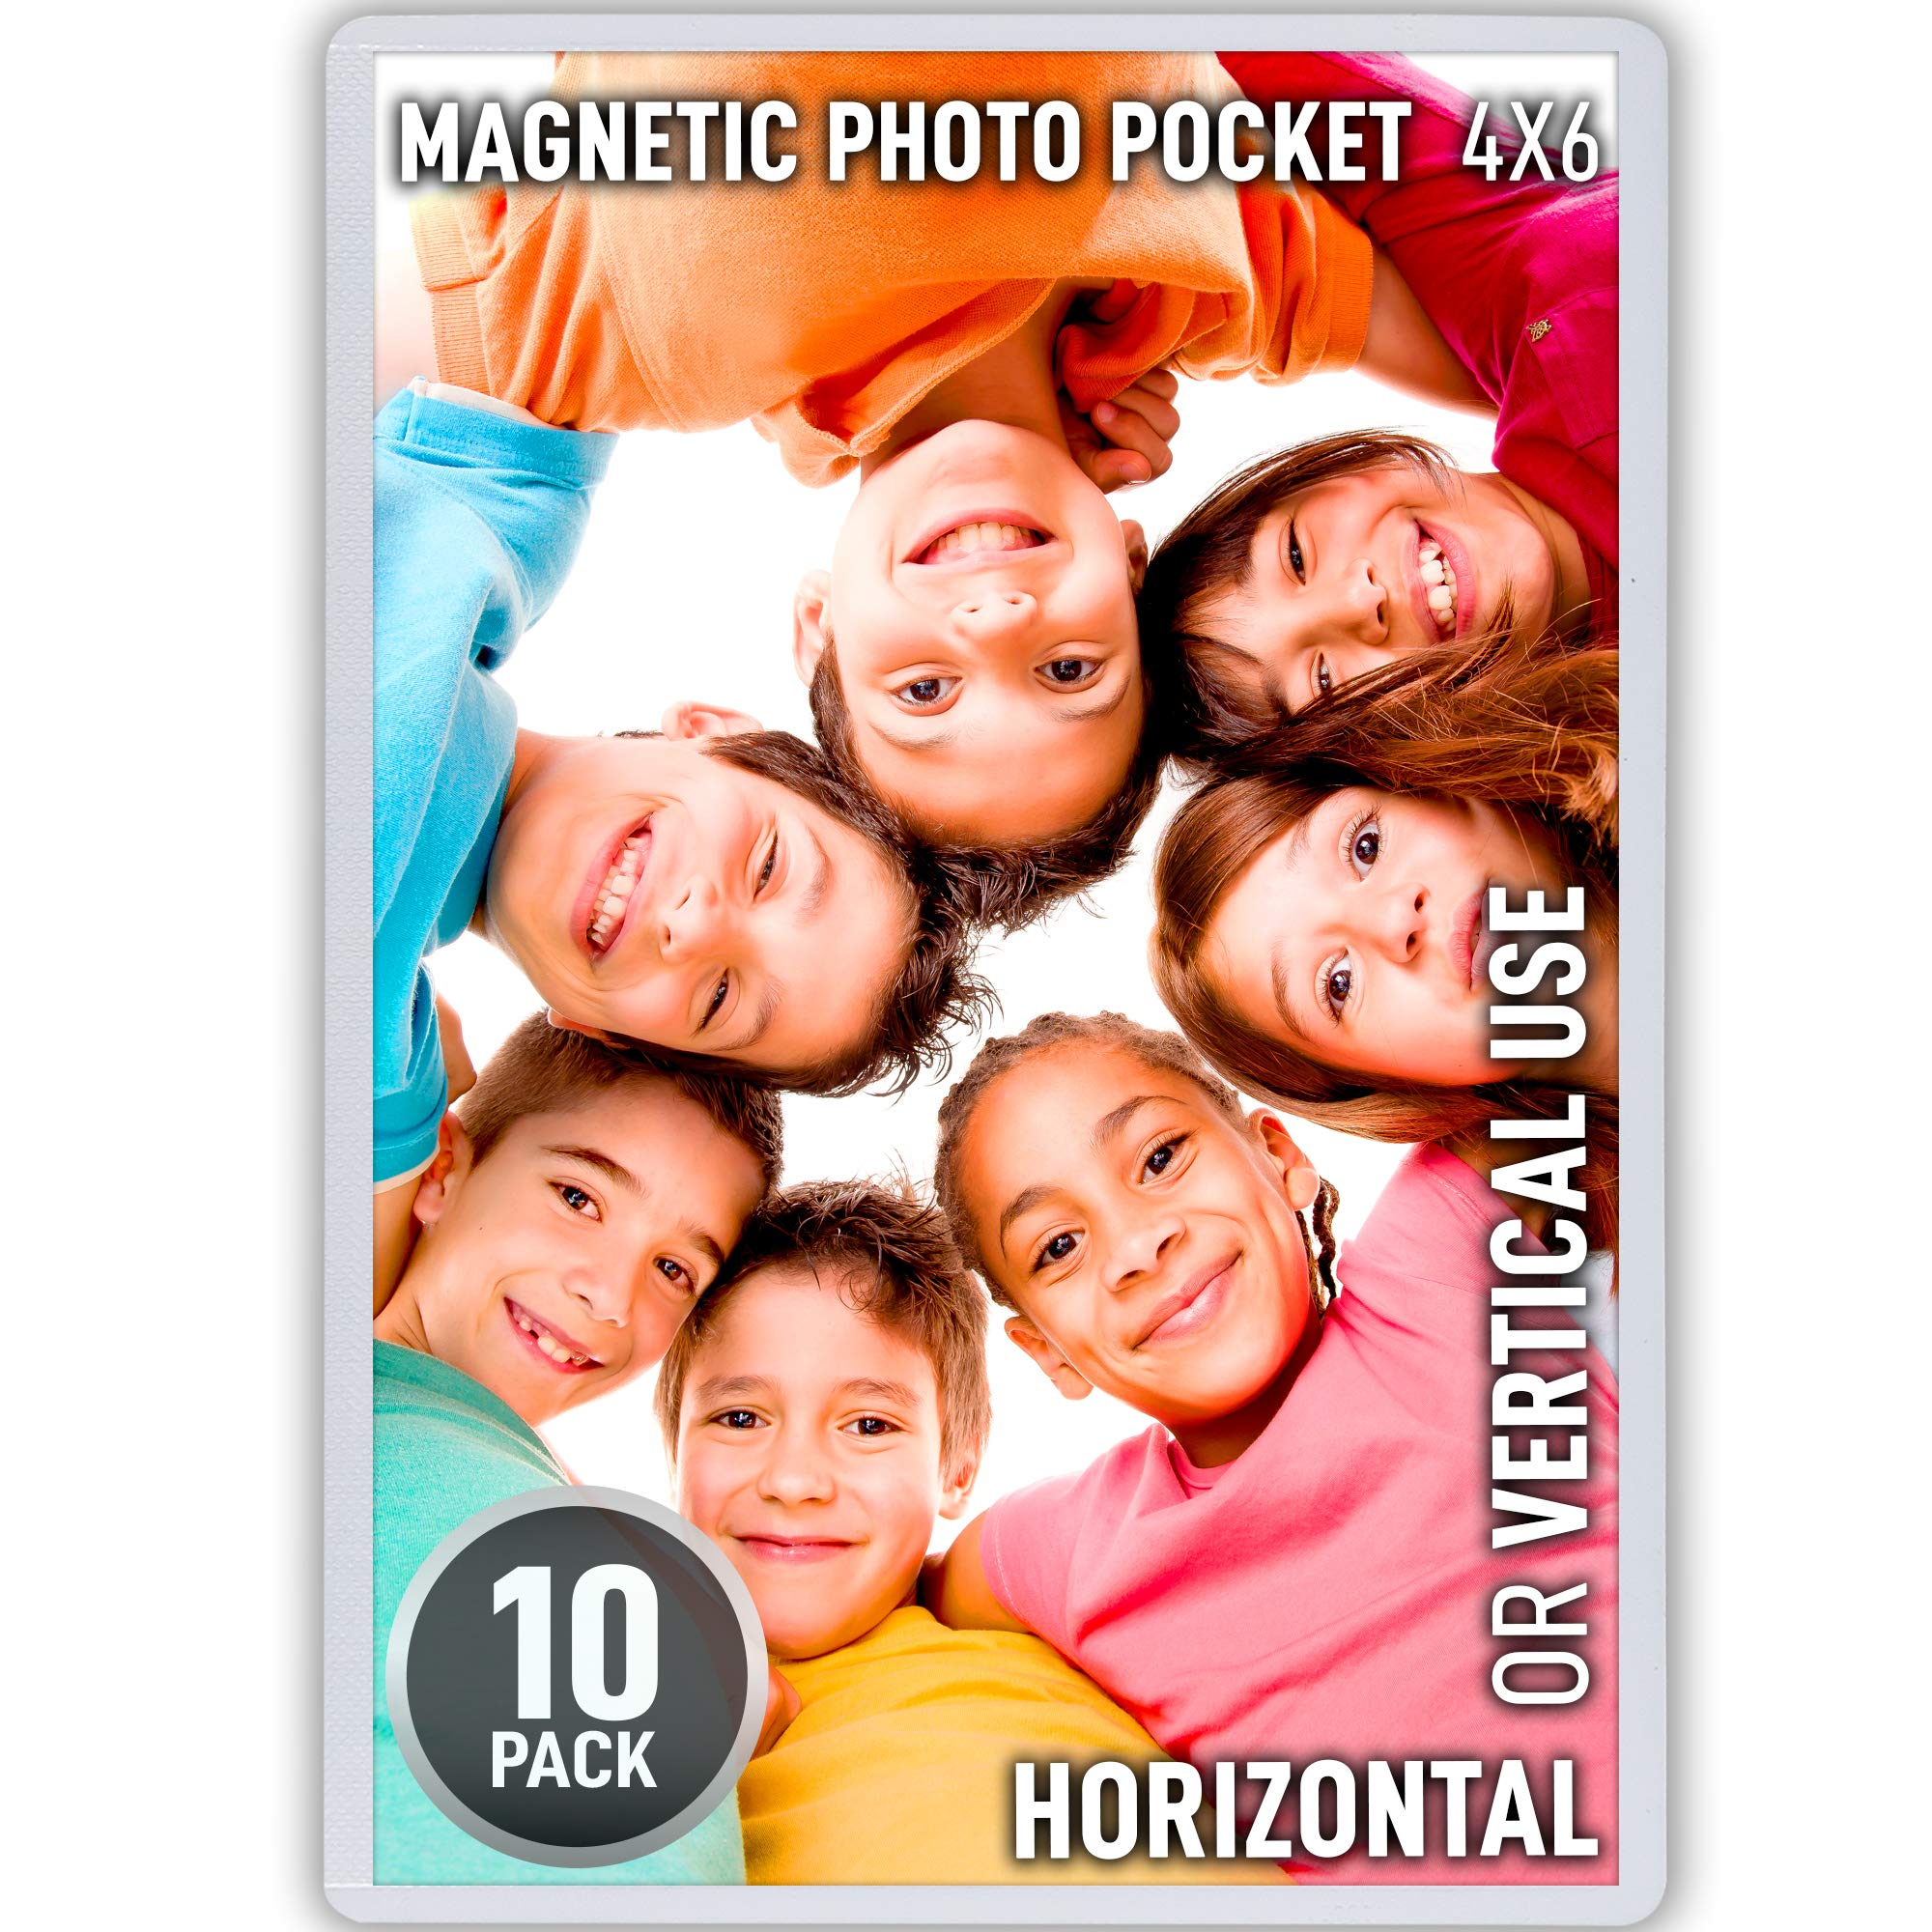 Magnetic Picture Frames with Thicker & Stronger Flexible Design - 10 Pack Fridge Photo Magnets with Sturdy, Extra Thick and Powerful Magnetic Frame, Securely Holds 4x6 Inch Photos - by Zulay Kitchen